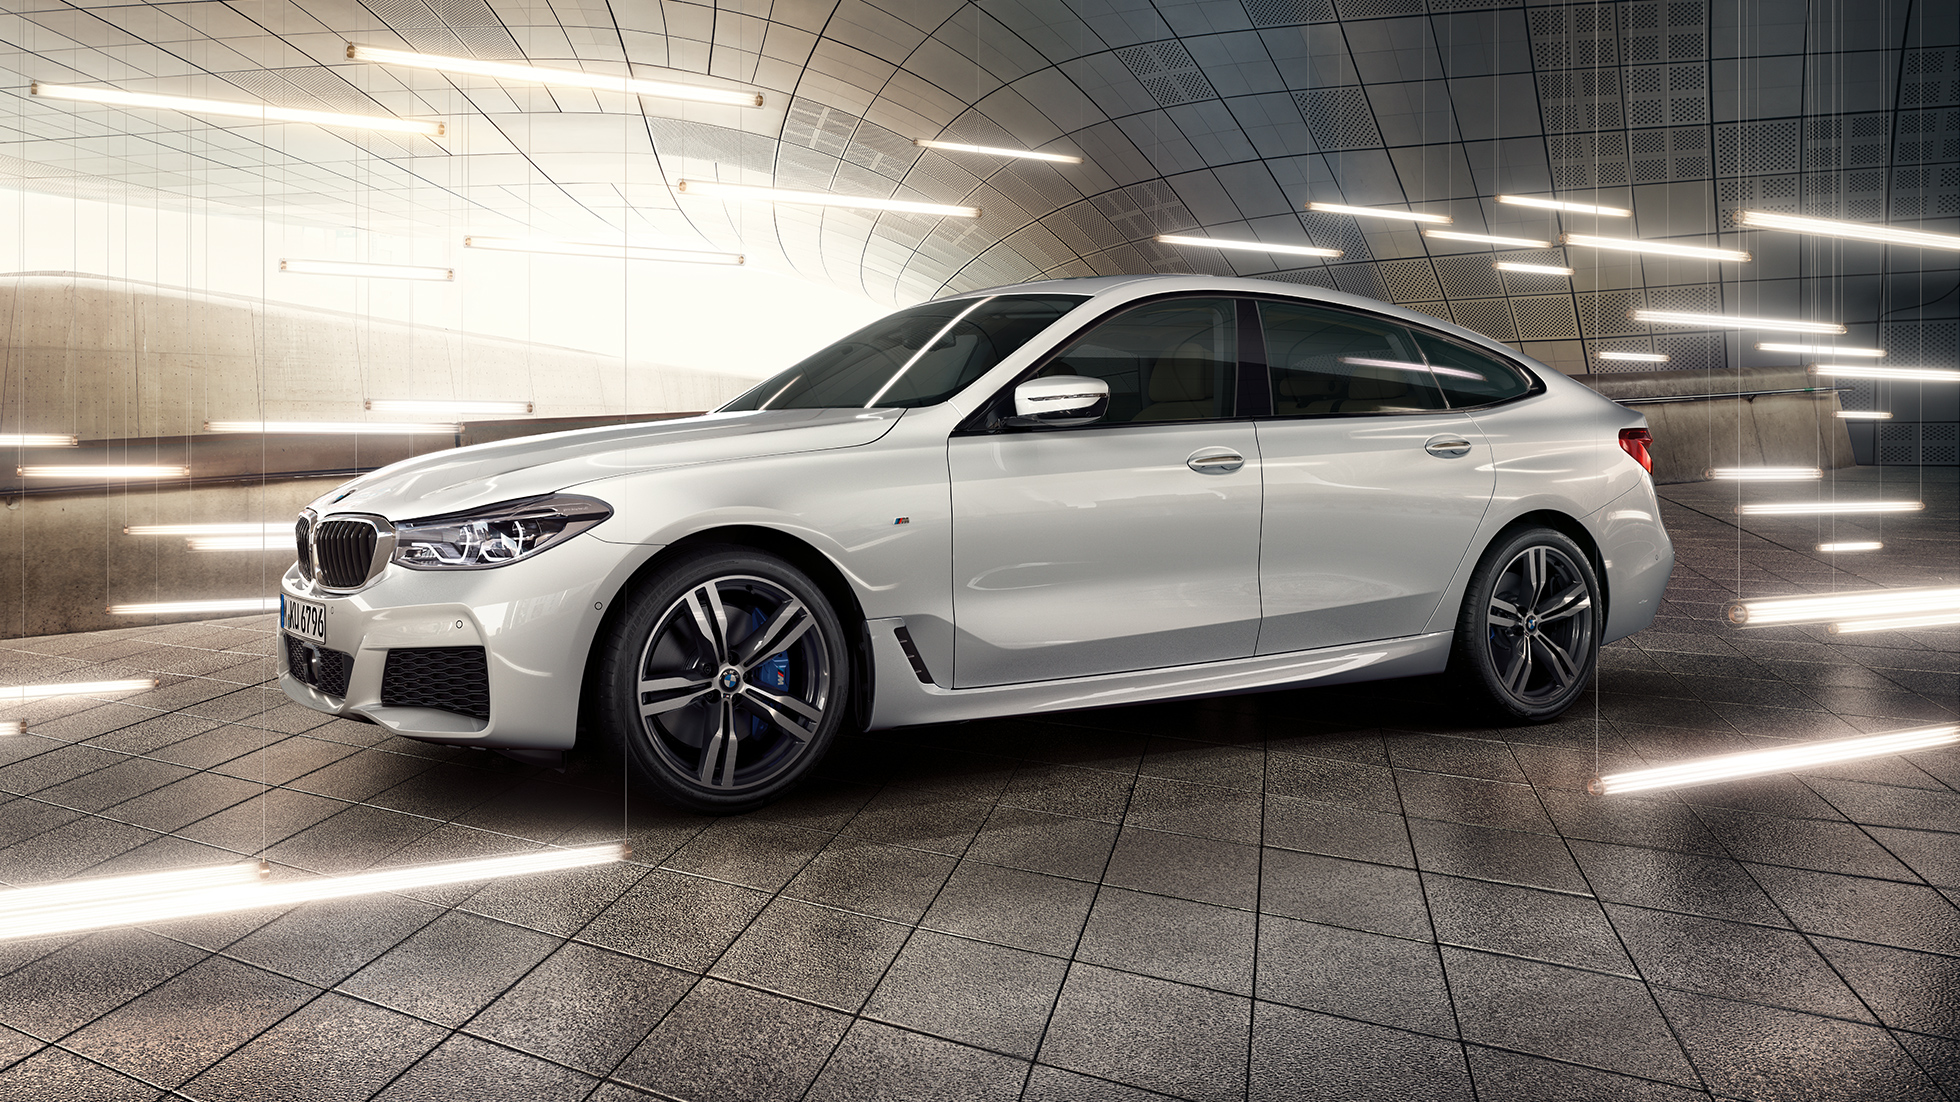 BMW 6 Series Gran Turismo G32 2017 Mineral White metallic side view with front